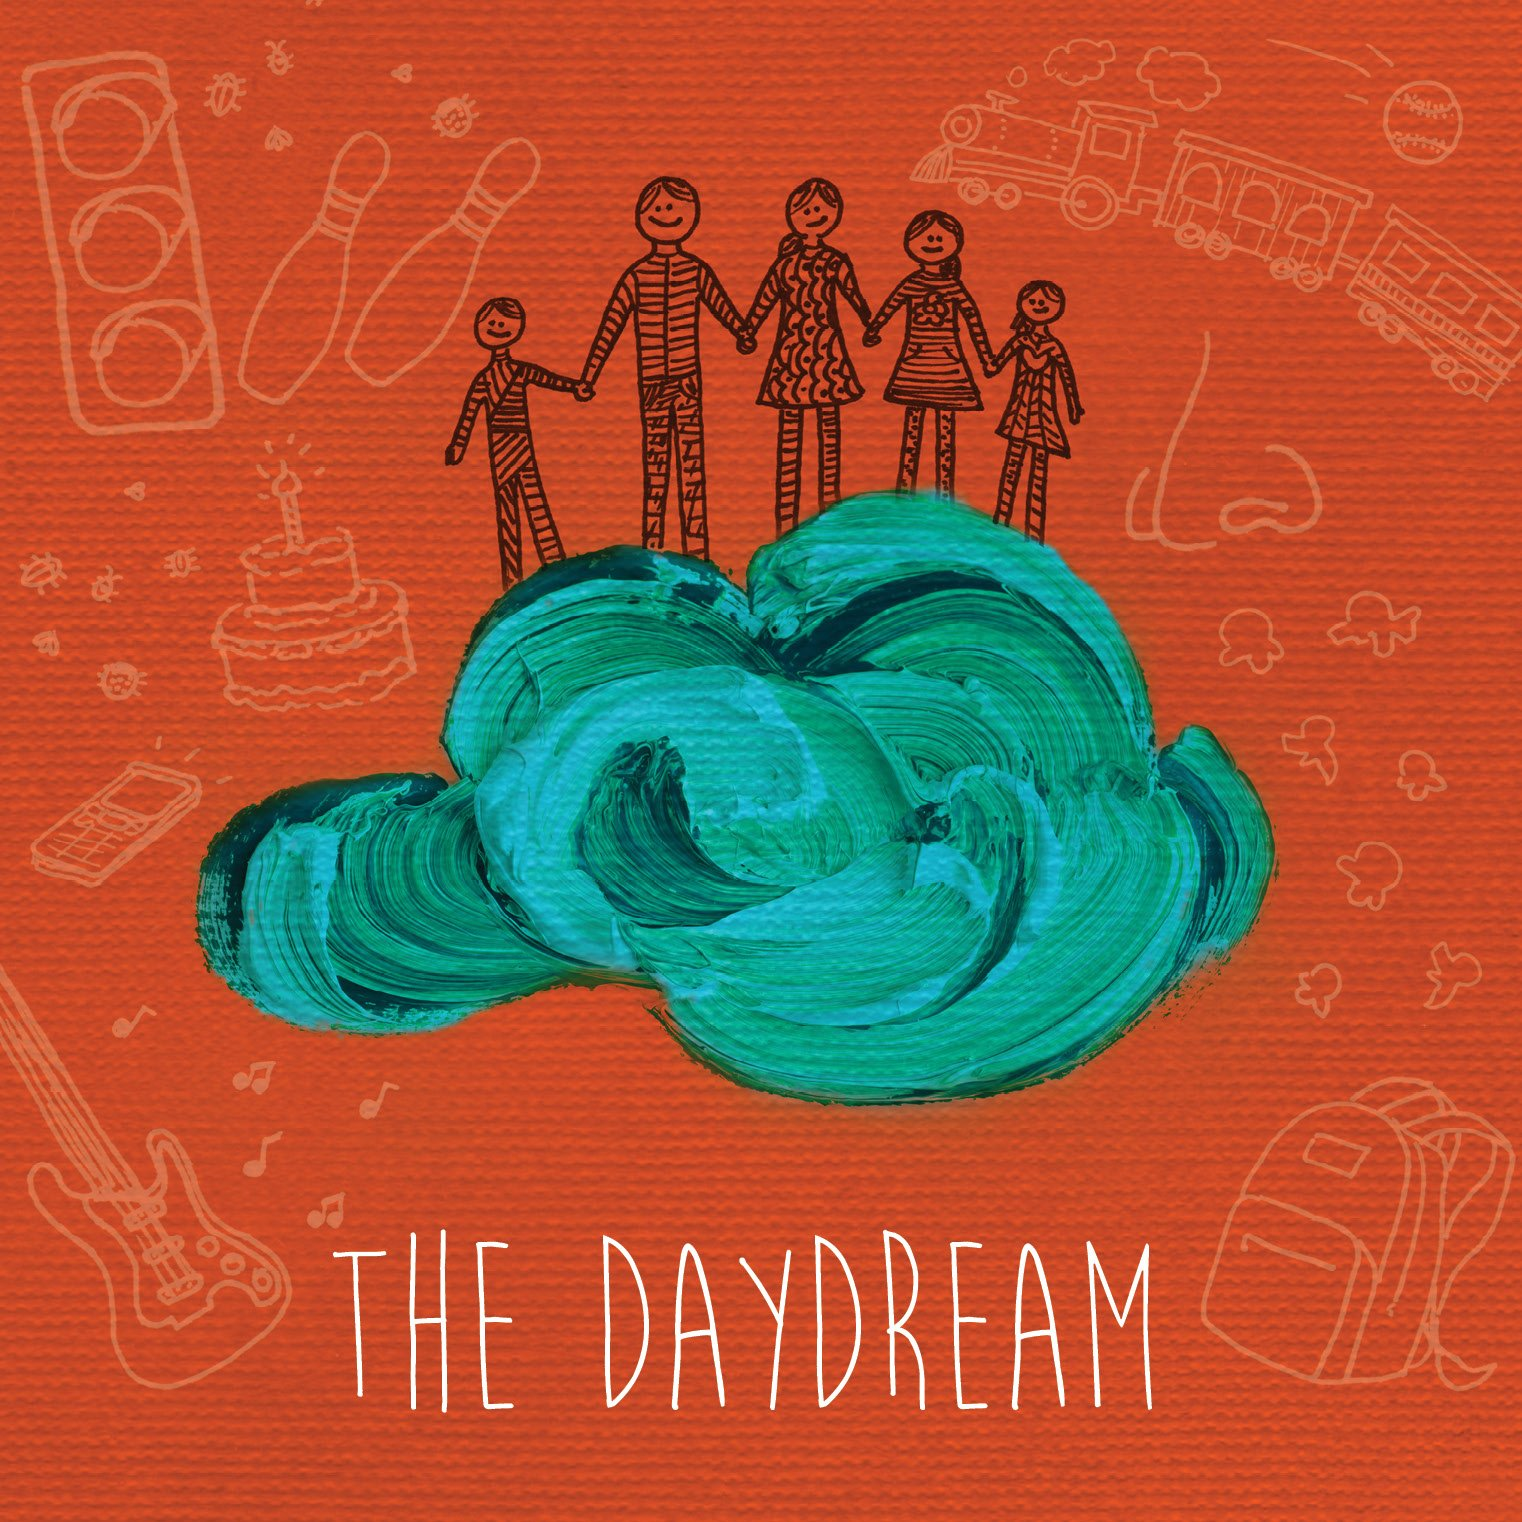 The Daydream